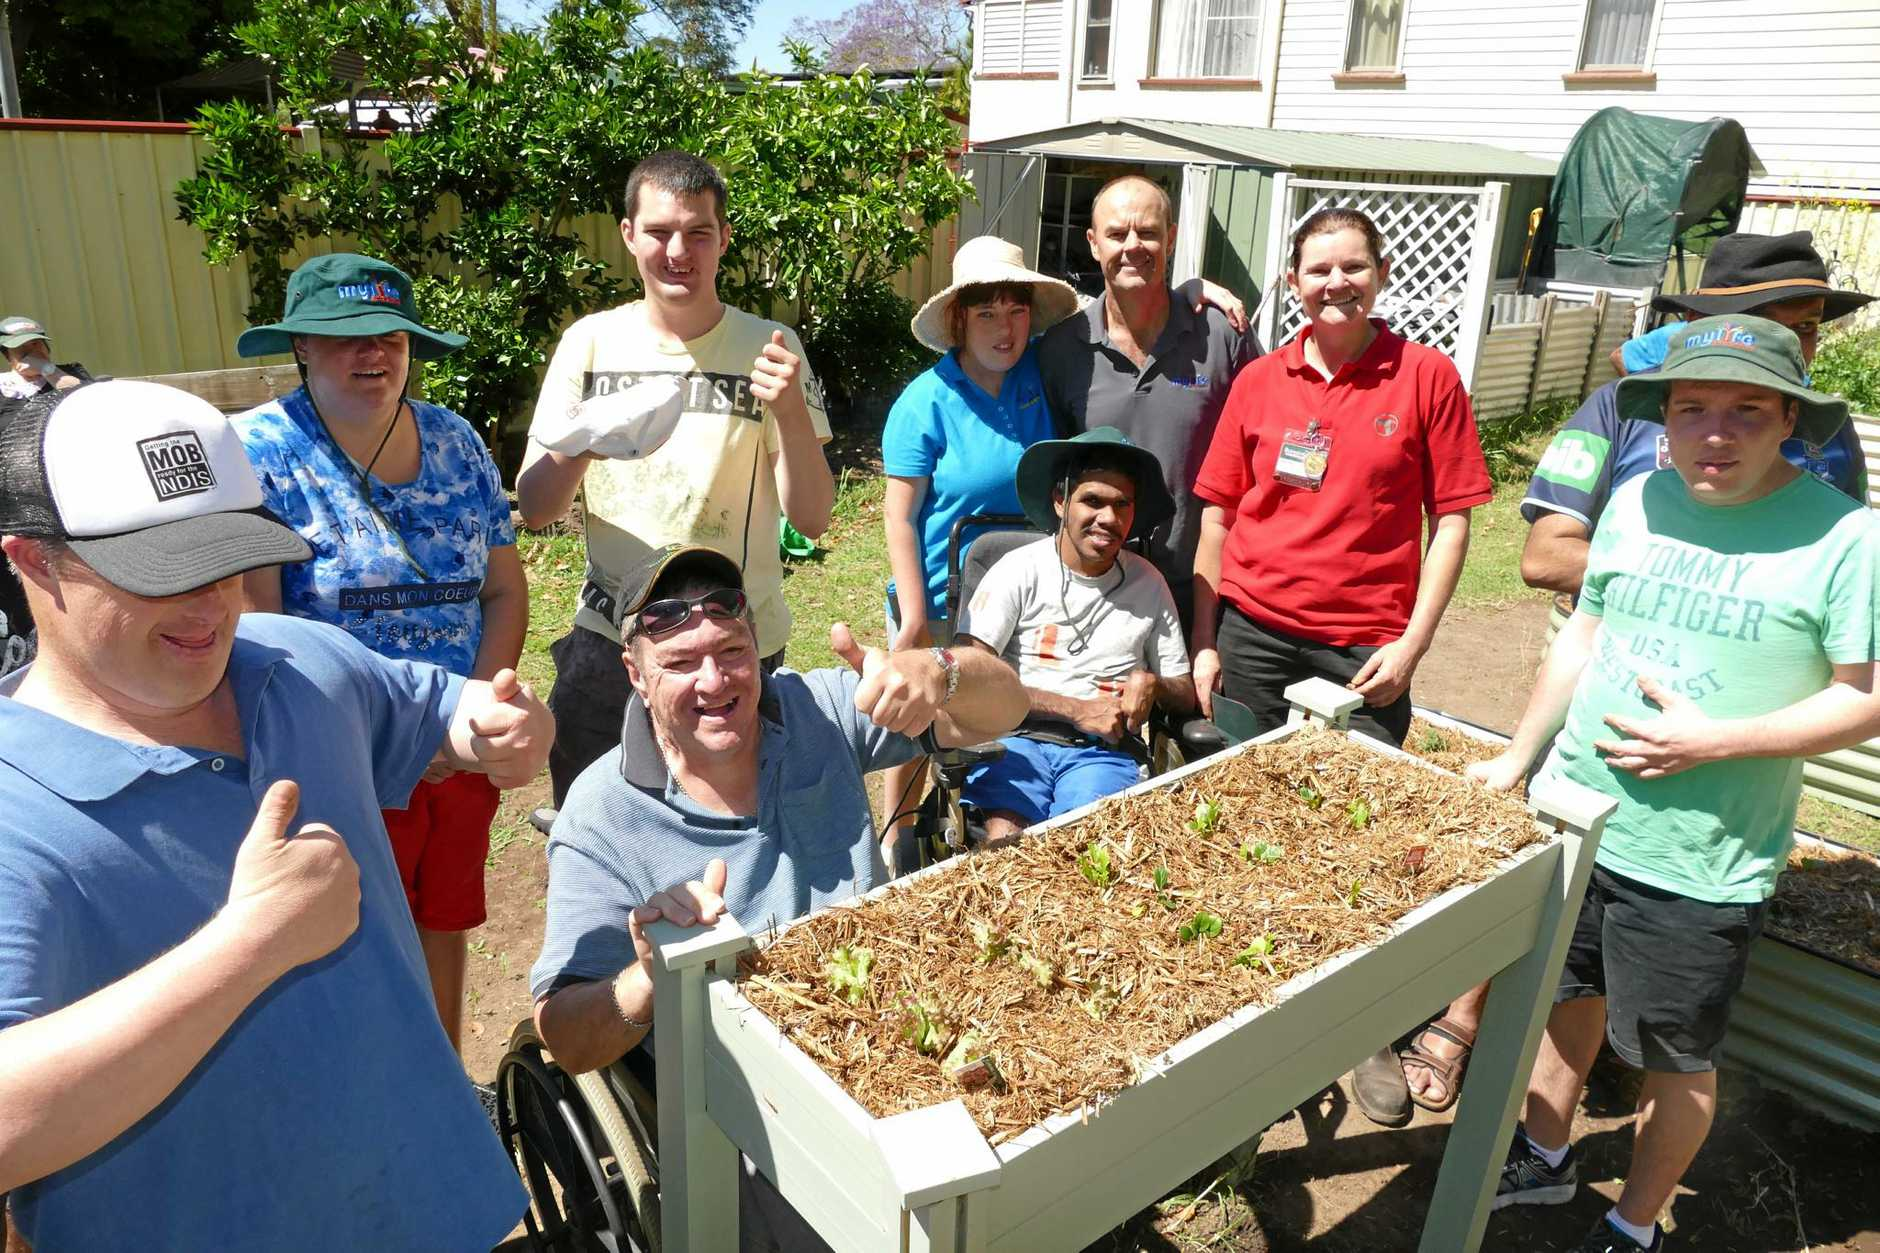 GOOD JOB: MyLife programs coordinator Adrian Baker and Bunnings activity organiser Toni Kearney and some of the MyLife participants check out the wheelchair accessible garden beds.